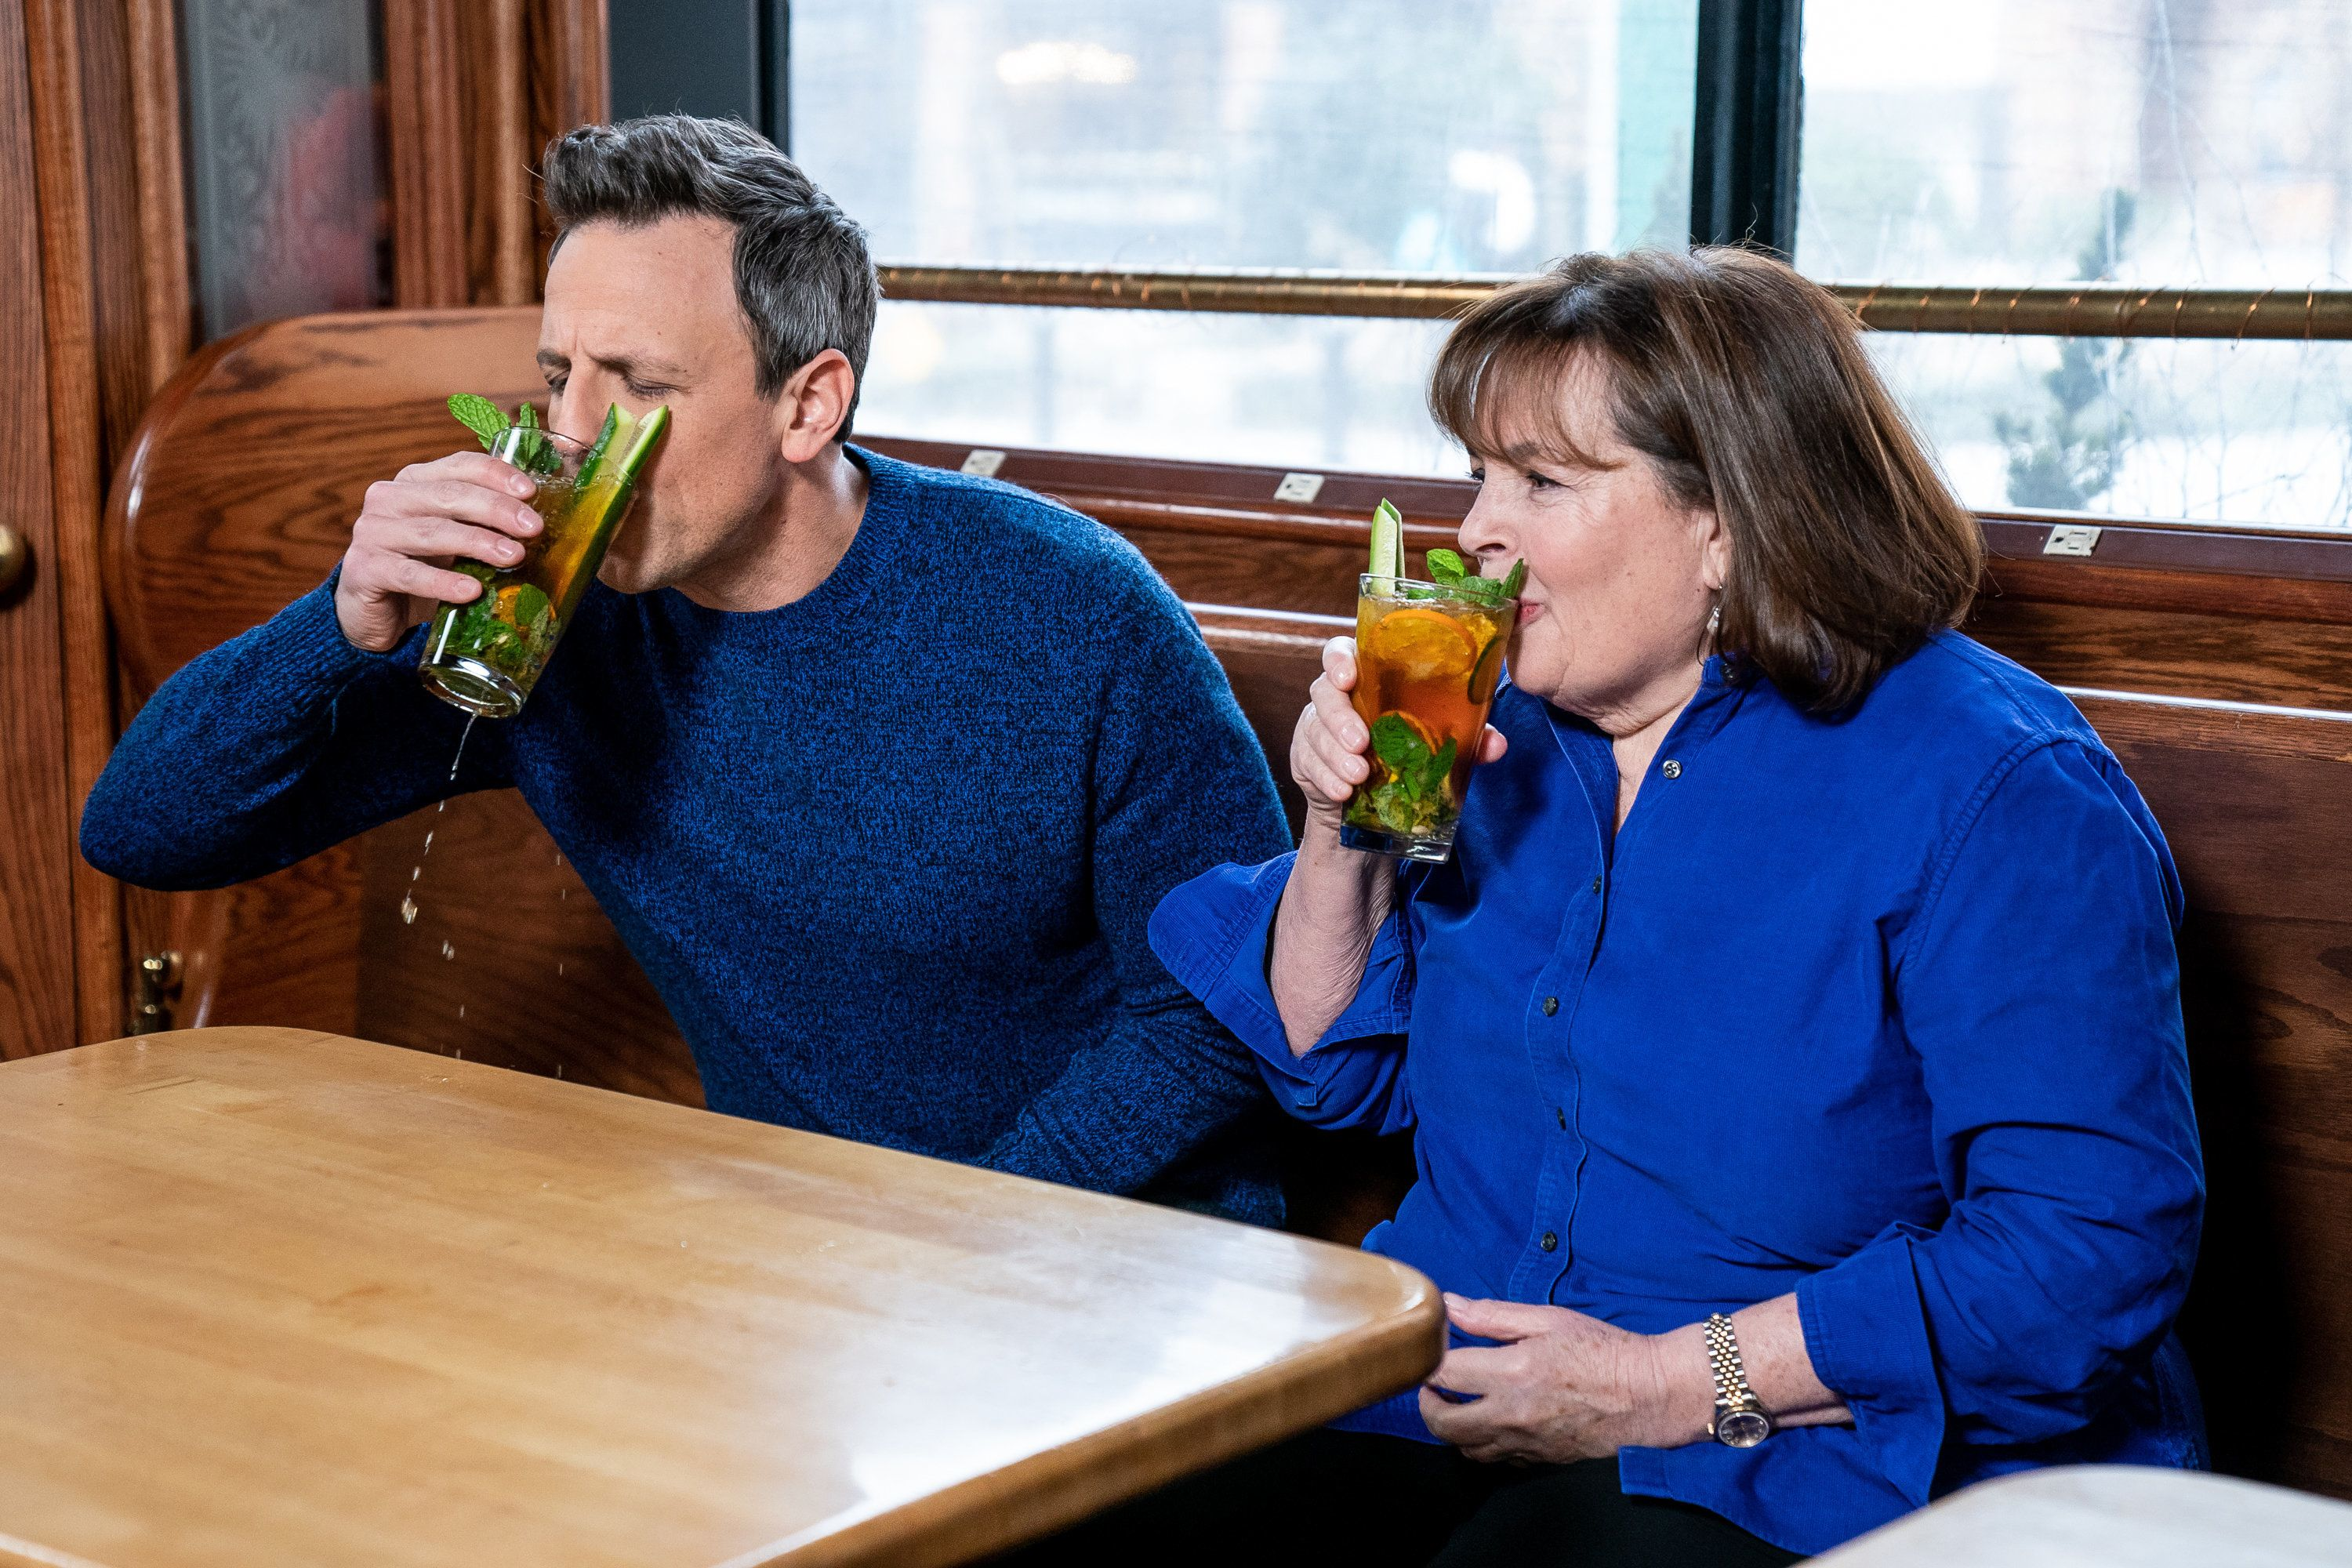 LATE NIGHT WITH SETH MEYERS -- Episode 795 -- Pictured: (l-r) Host Seth Meyers and Ina Garten during 'Seth Goes Day Drinking with Ina Garten' on February 6, 2019 -- (Photo by: Lloyd Bishop/NBC/NBCU Photo Bank via Getty Images)